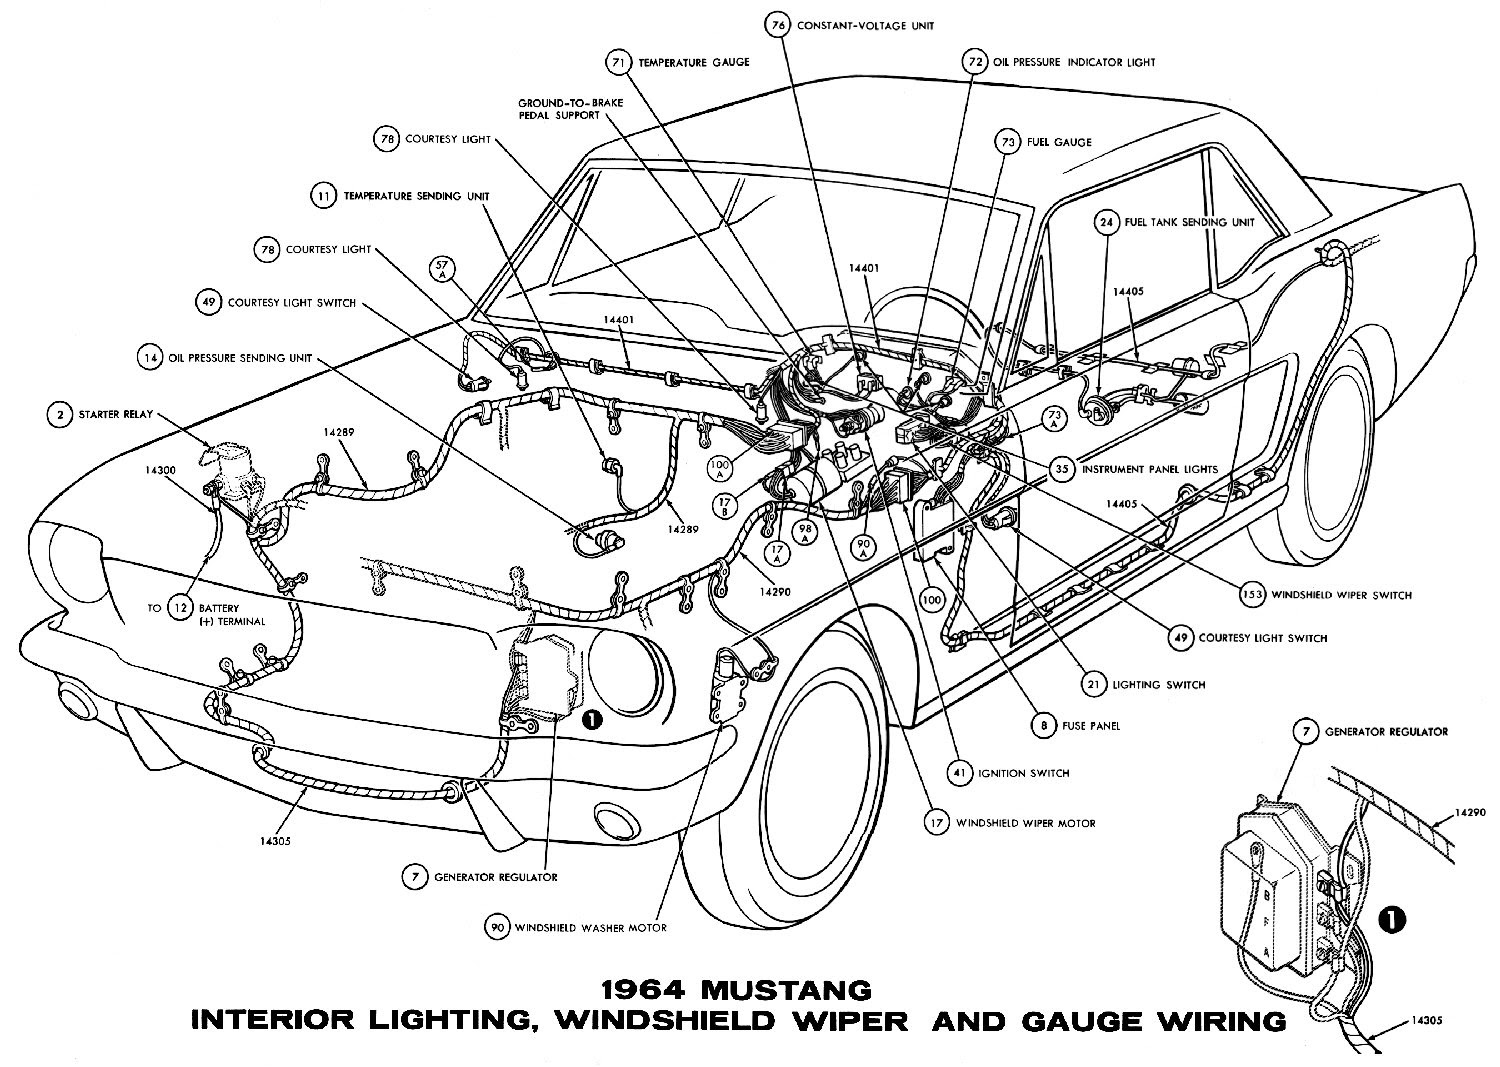 1968 Mustang Starter Relay Diagram Wiring Schematic Wiring Diagram Local A Local A Maceratadoc It